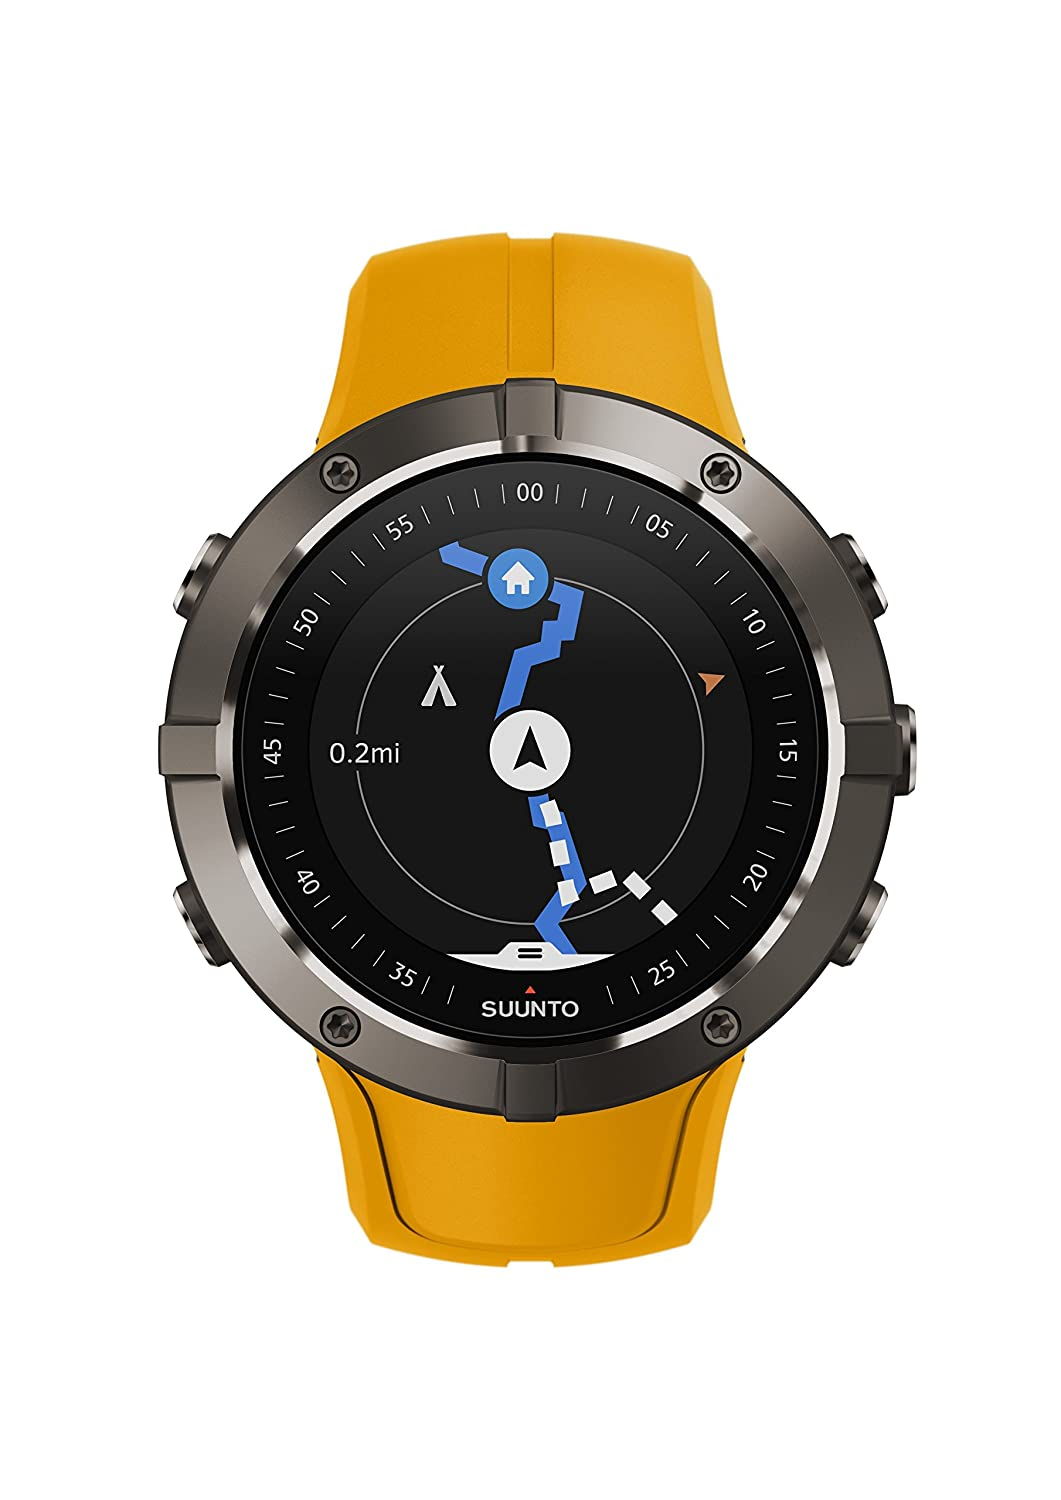 Amazon.com: Suunto Spartan Trainer Wrist HR Multisport GPS Watch (Amber): GPS & Navigation